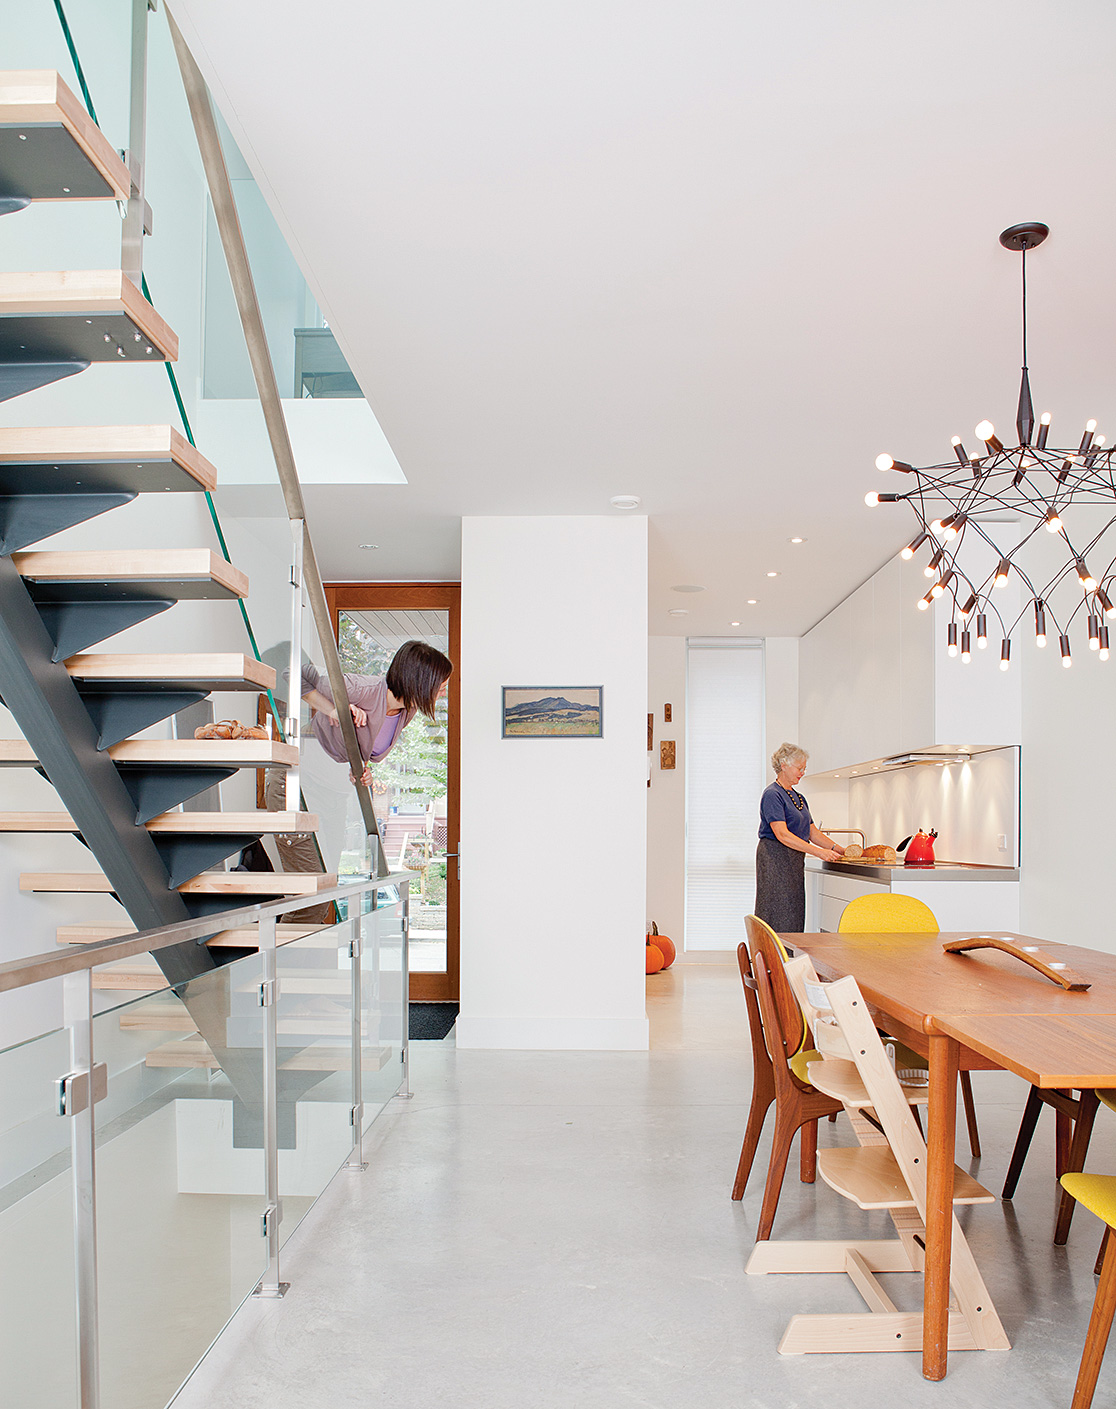 Knezic designed the staircase, with its singular steel support and glass rail, to allow for a clear view of the main floor.